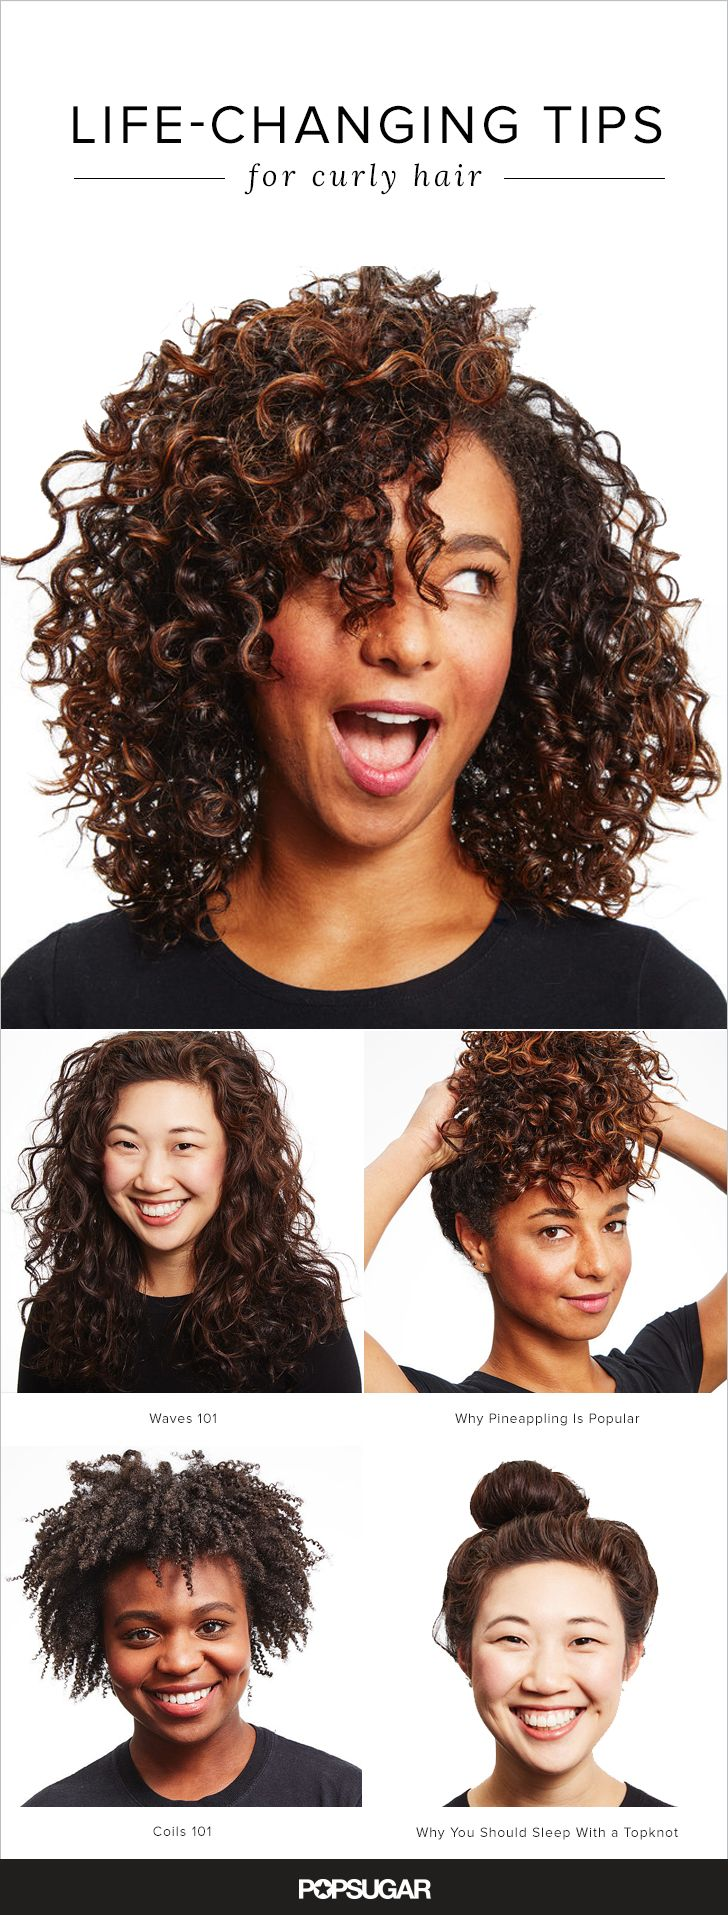 These expert tips will make you fall in love with your curly strands.